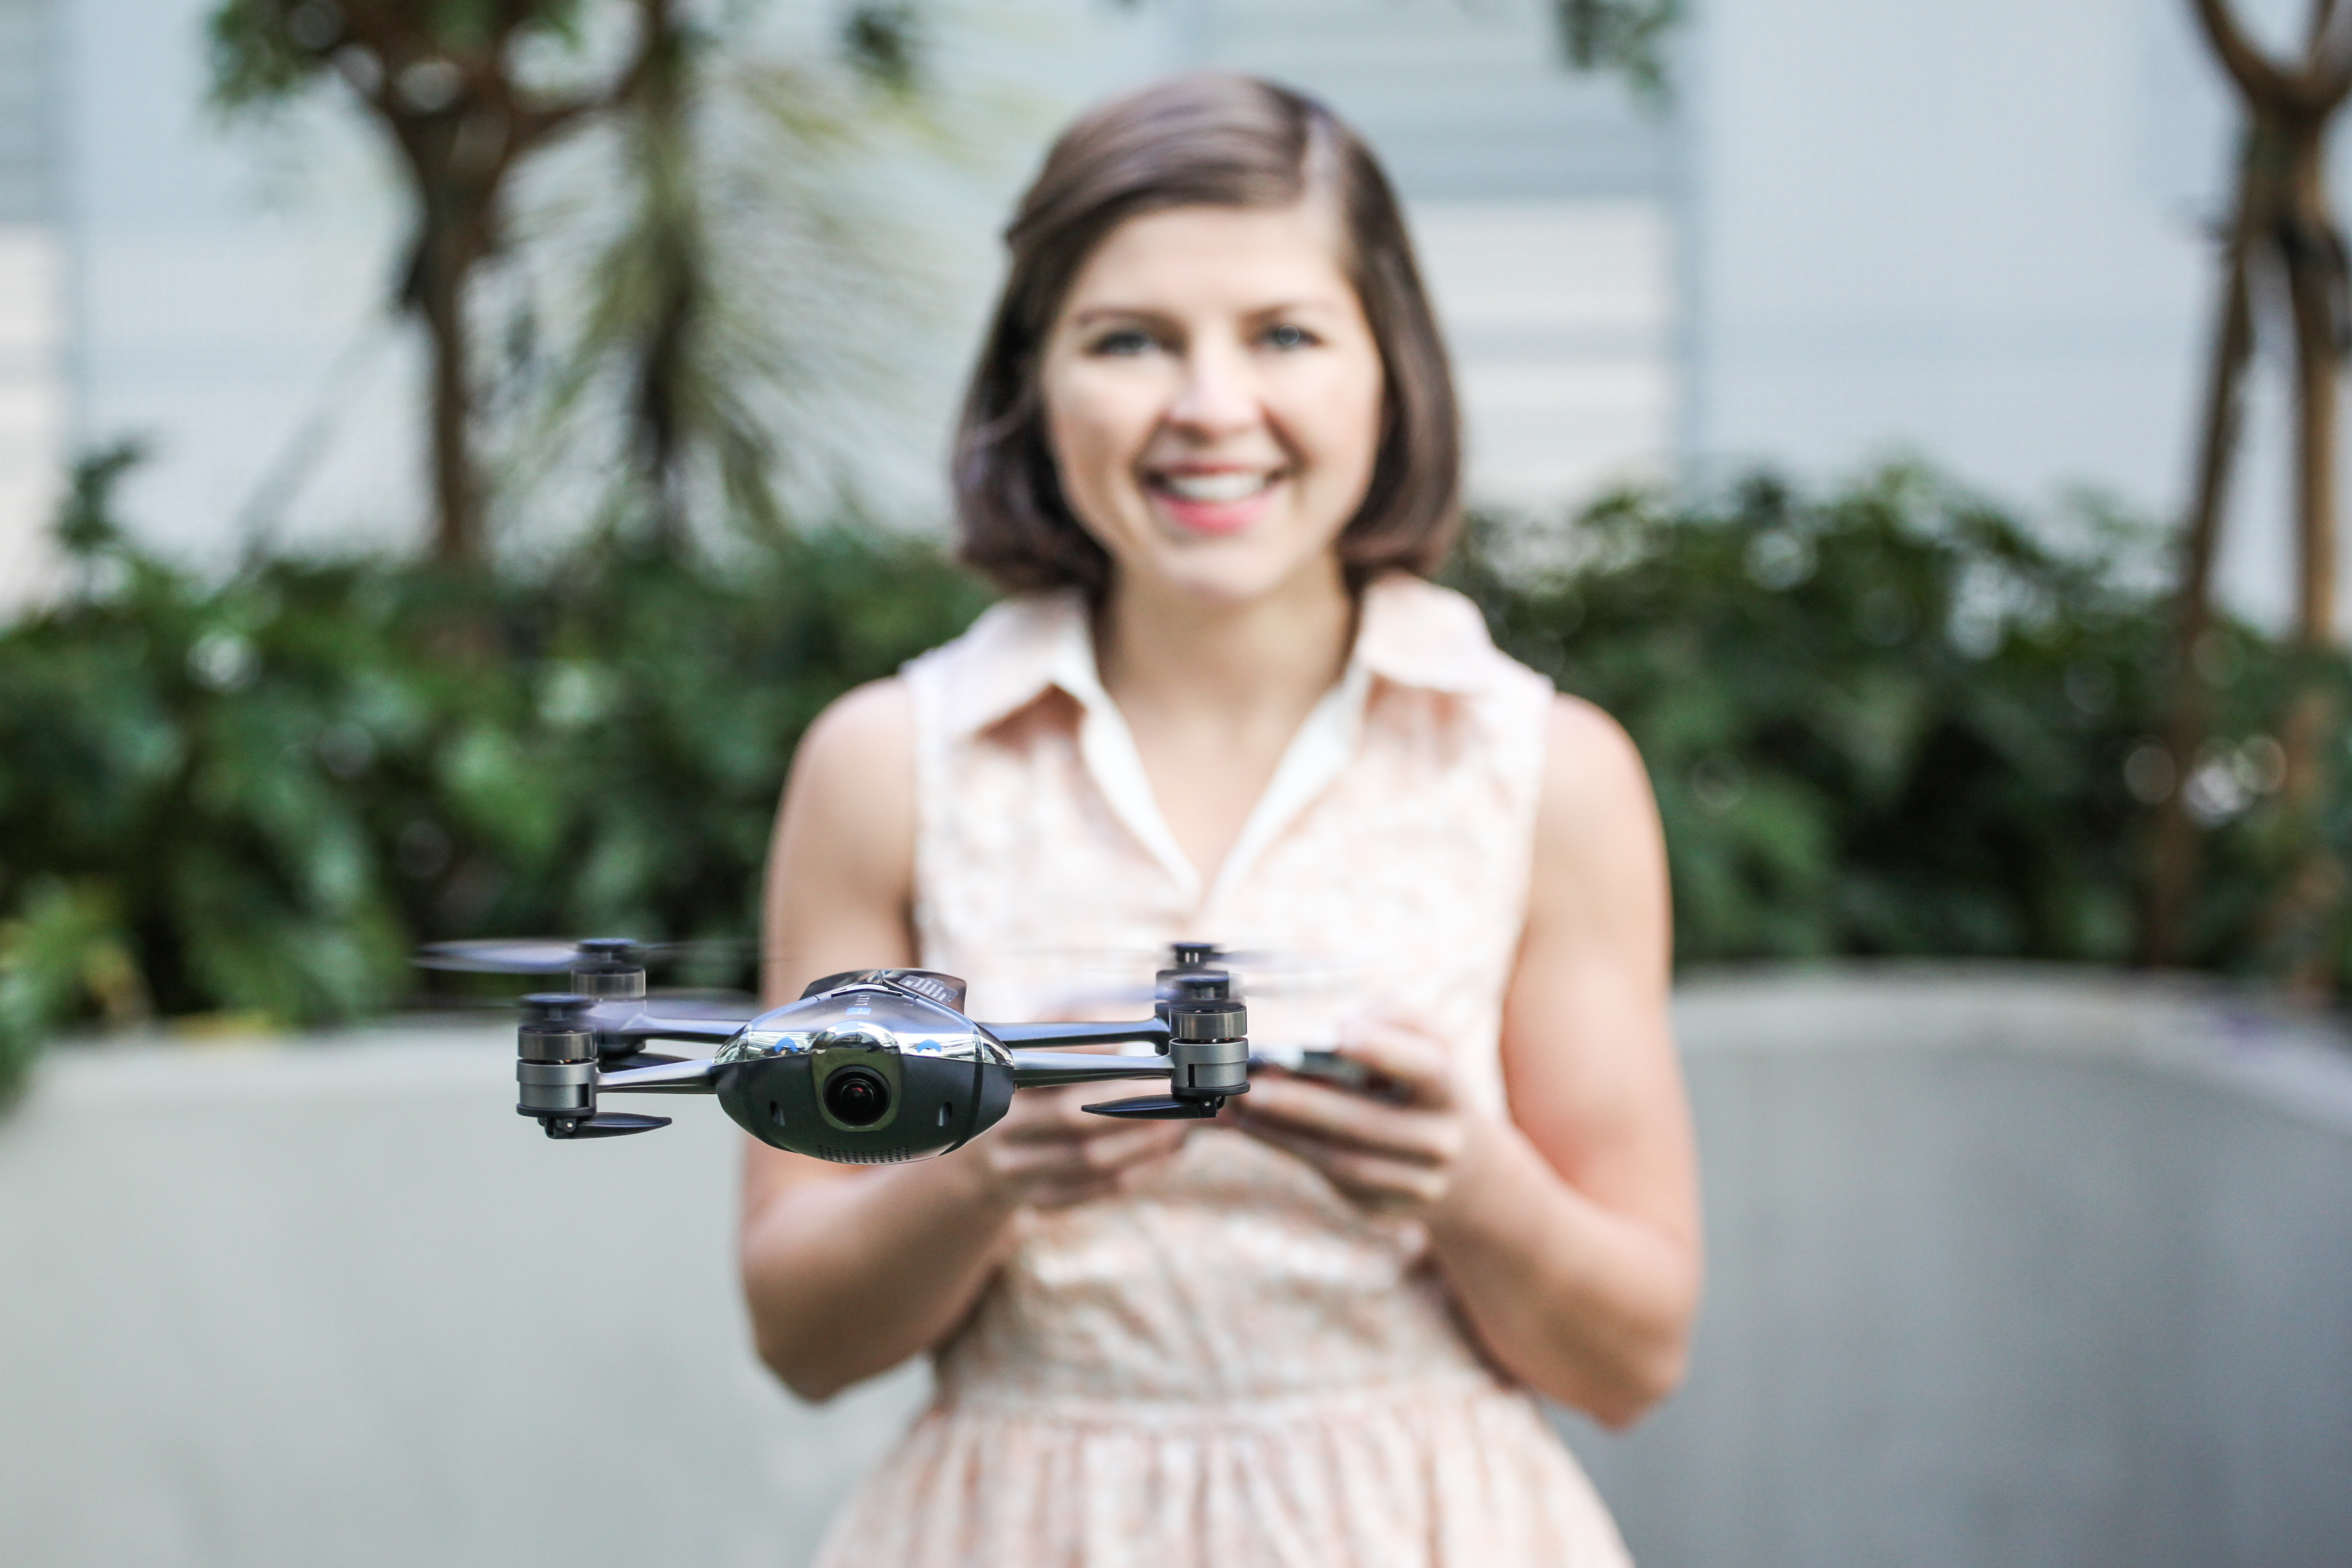 Lily drone review: It would have been awesome — if it were 1/5 of the price